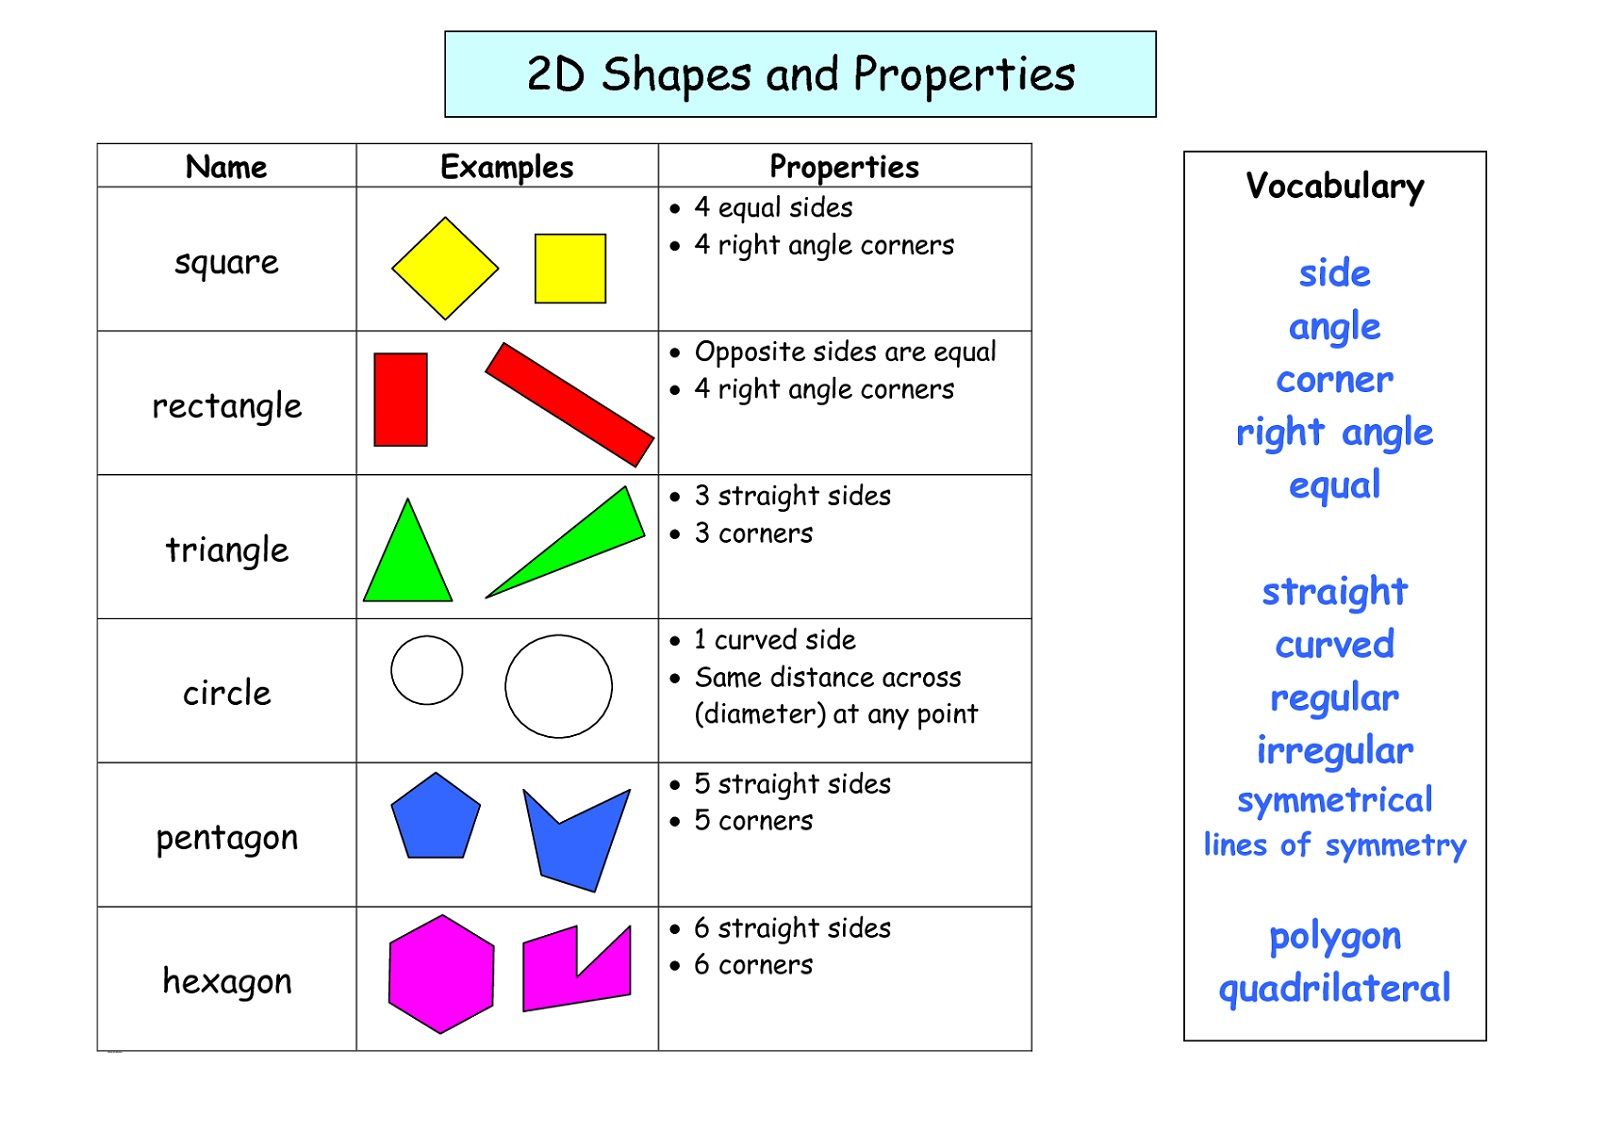 2D Shapes and Sides